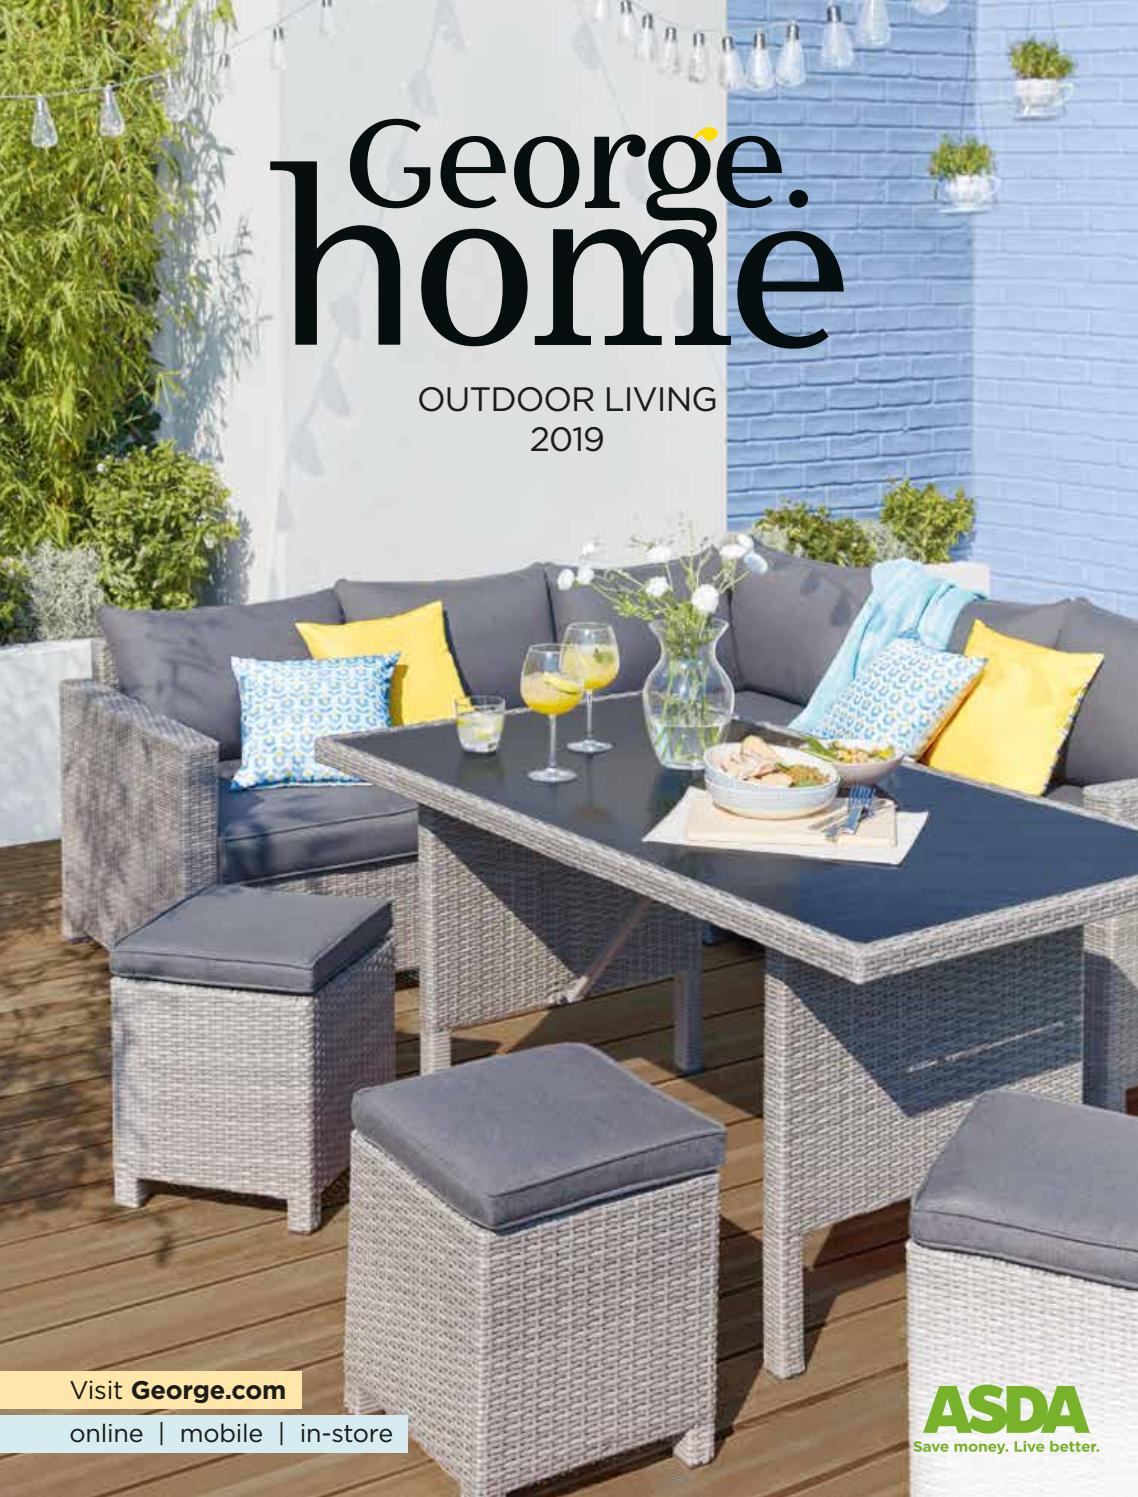 George Home Outdoor Living Catalogue 10 by Asda - issuu